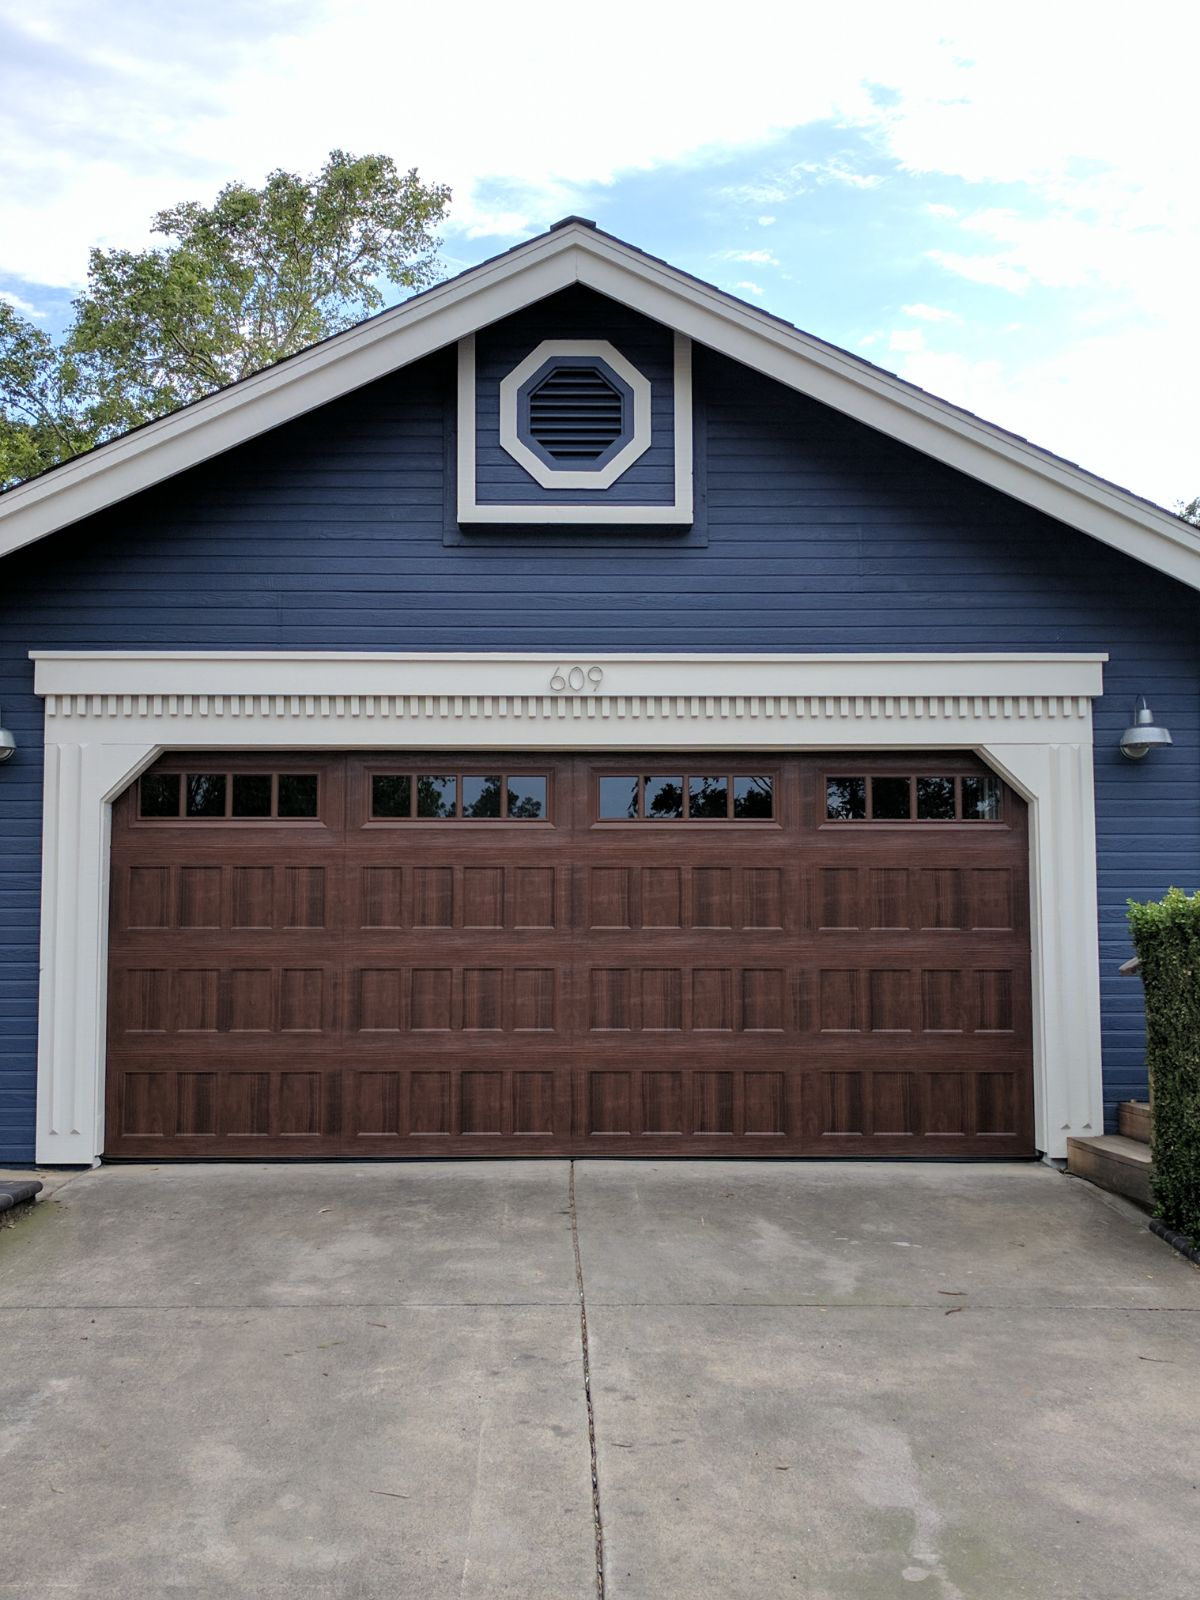 Amarr Oak Summit 1000 Walnut Garage Door  Perfect. Garage Door Repair Albuquerque New Mexico. Bug Screen Door. 6 Door Excursion For Sale. Garage Storage Ideas Ikea. Wall Mounted Vacuum For Garage. Thermal Patio Door Curtains. Petsafe Freedom Patio Panel Pet Door. Concealed Door Hinges